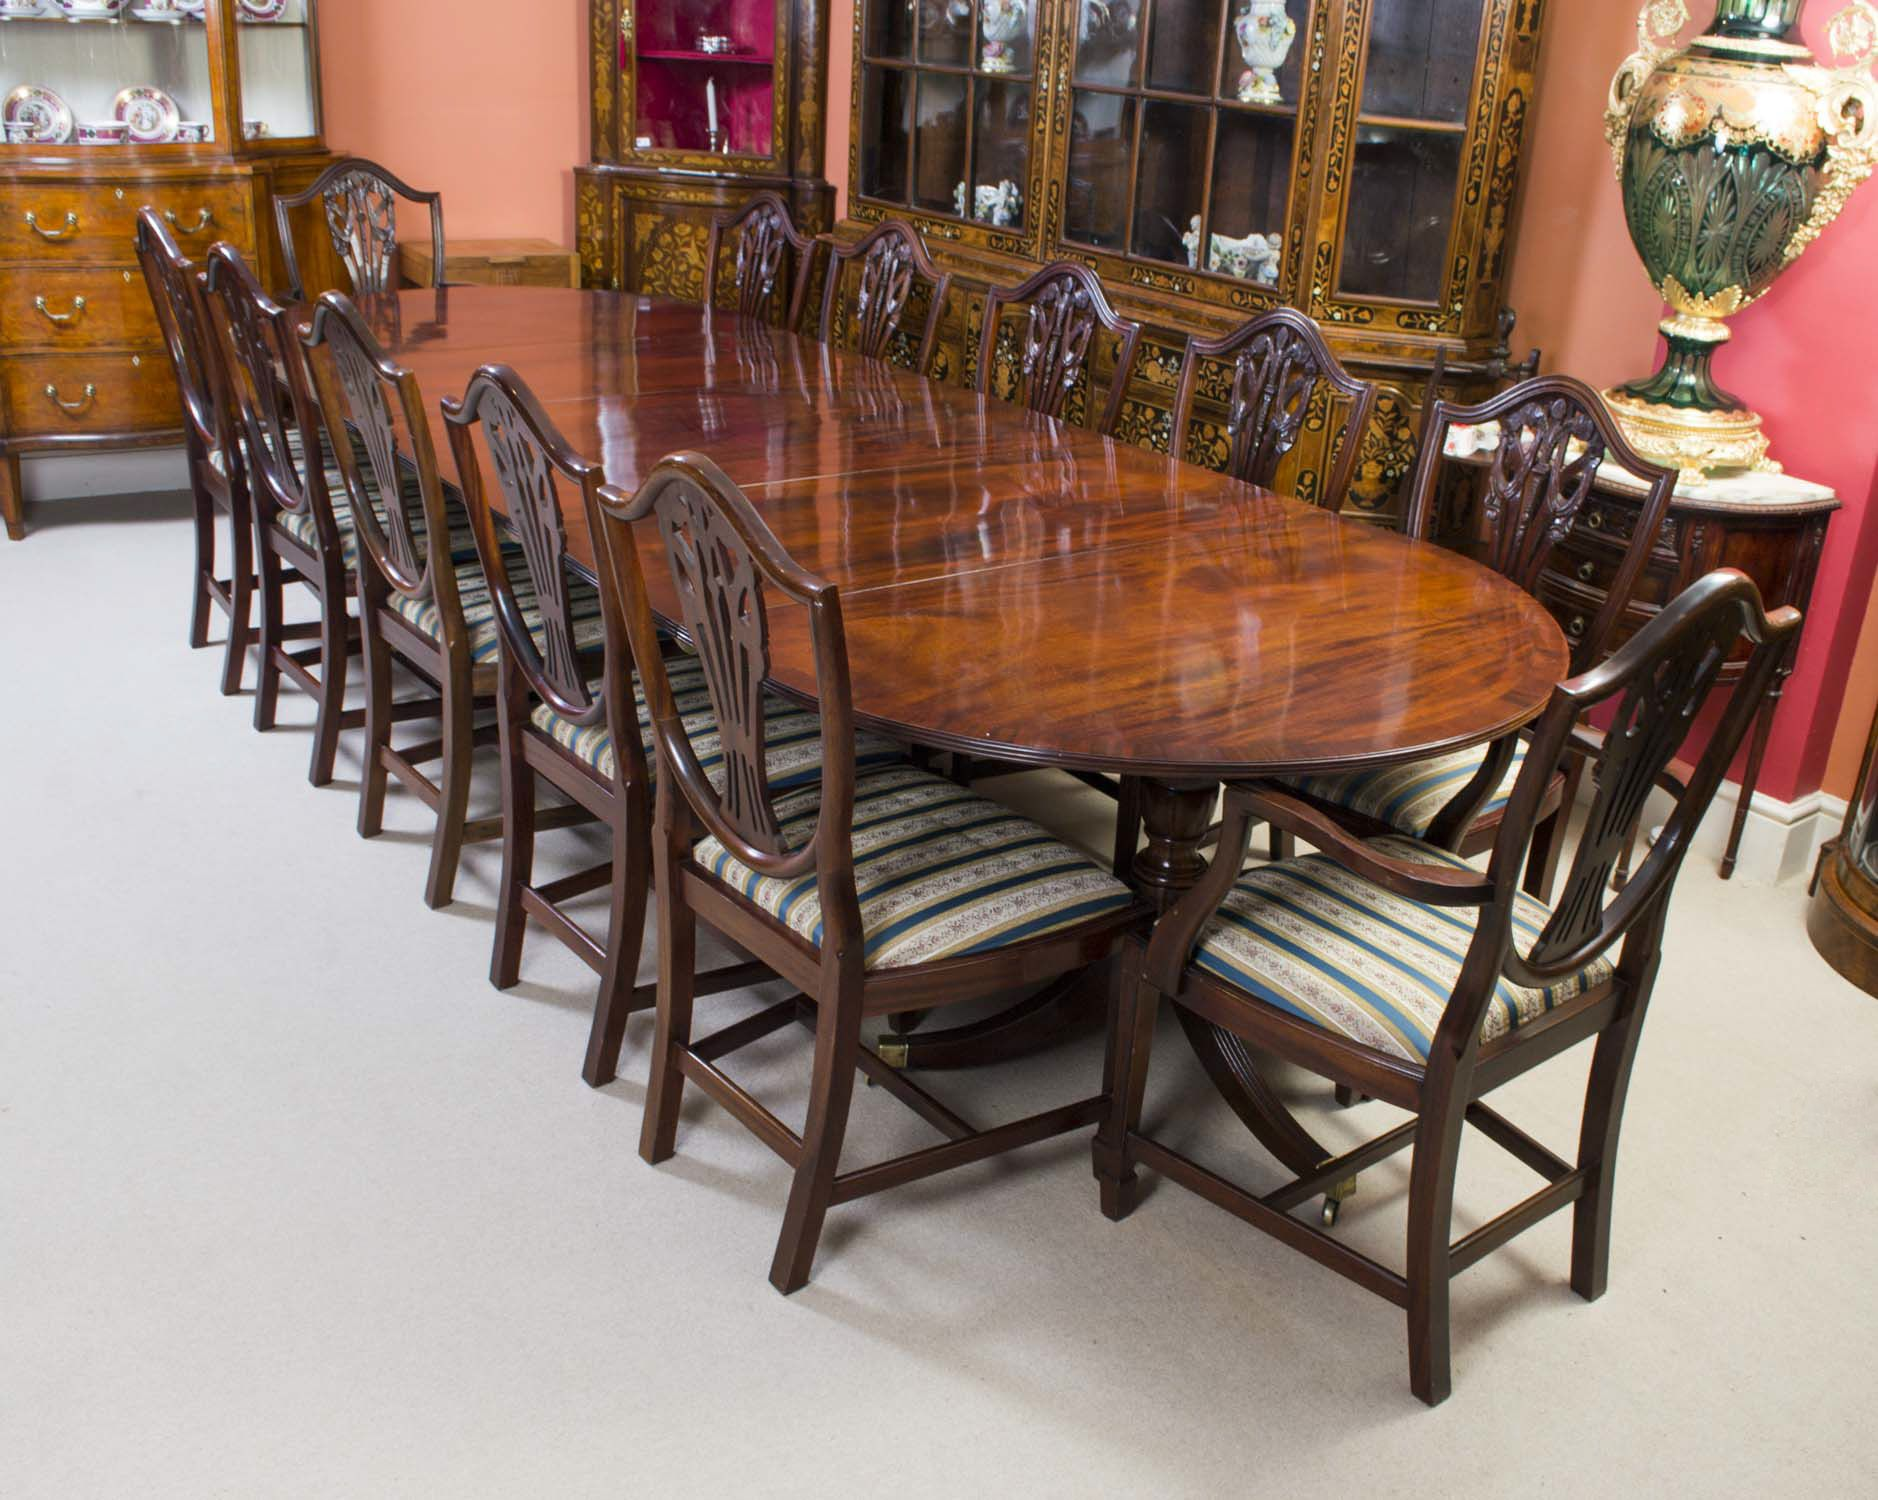 12 Chairs A Magnificent Antique Regency Dining Table And Set Of 12